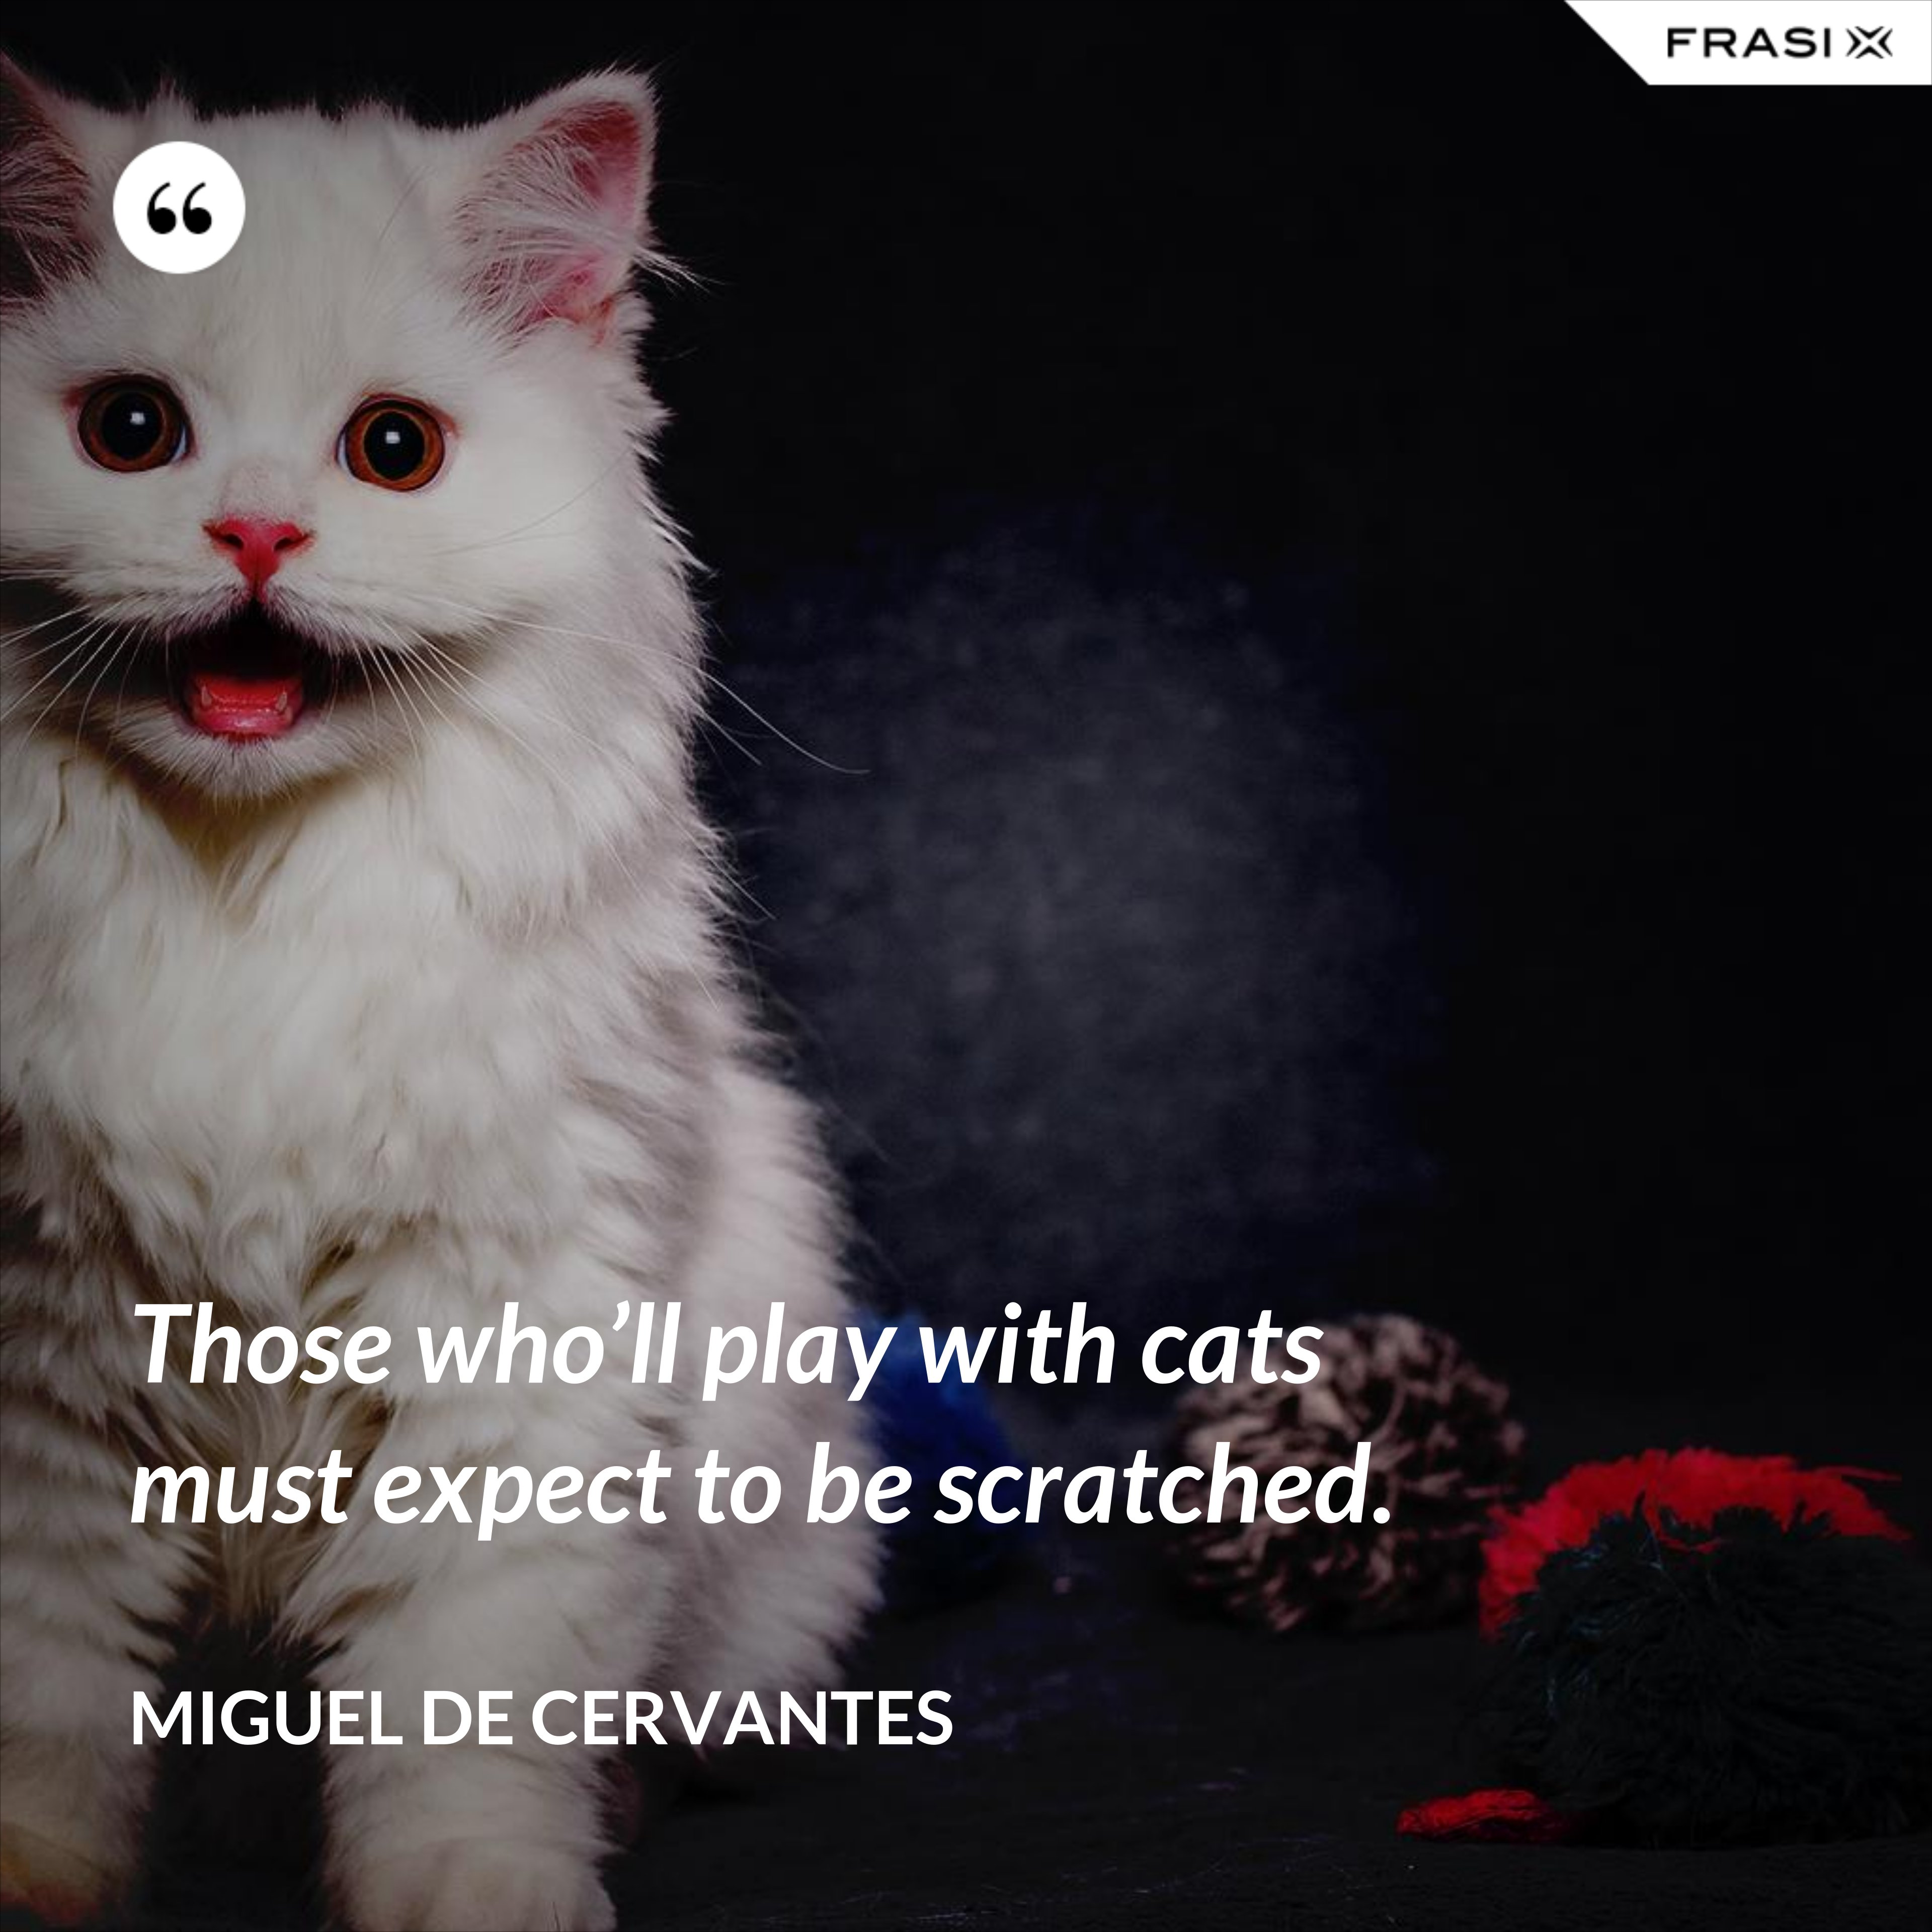 Those who'll play with cats must expect to be scratched. - Miguel de Cervantes